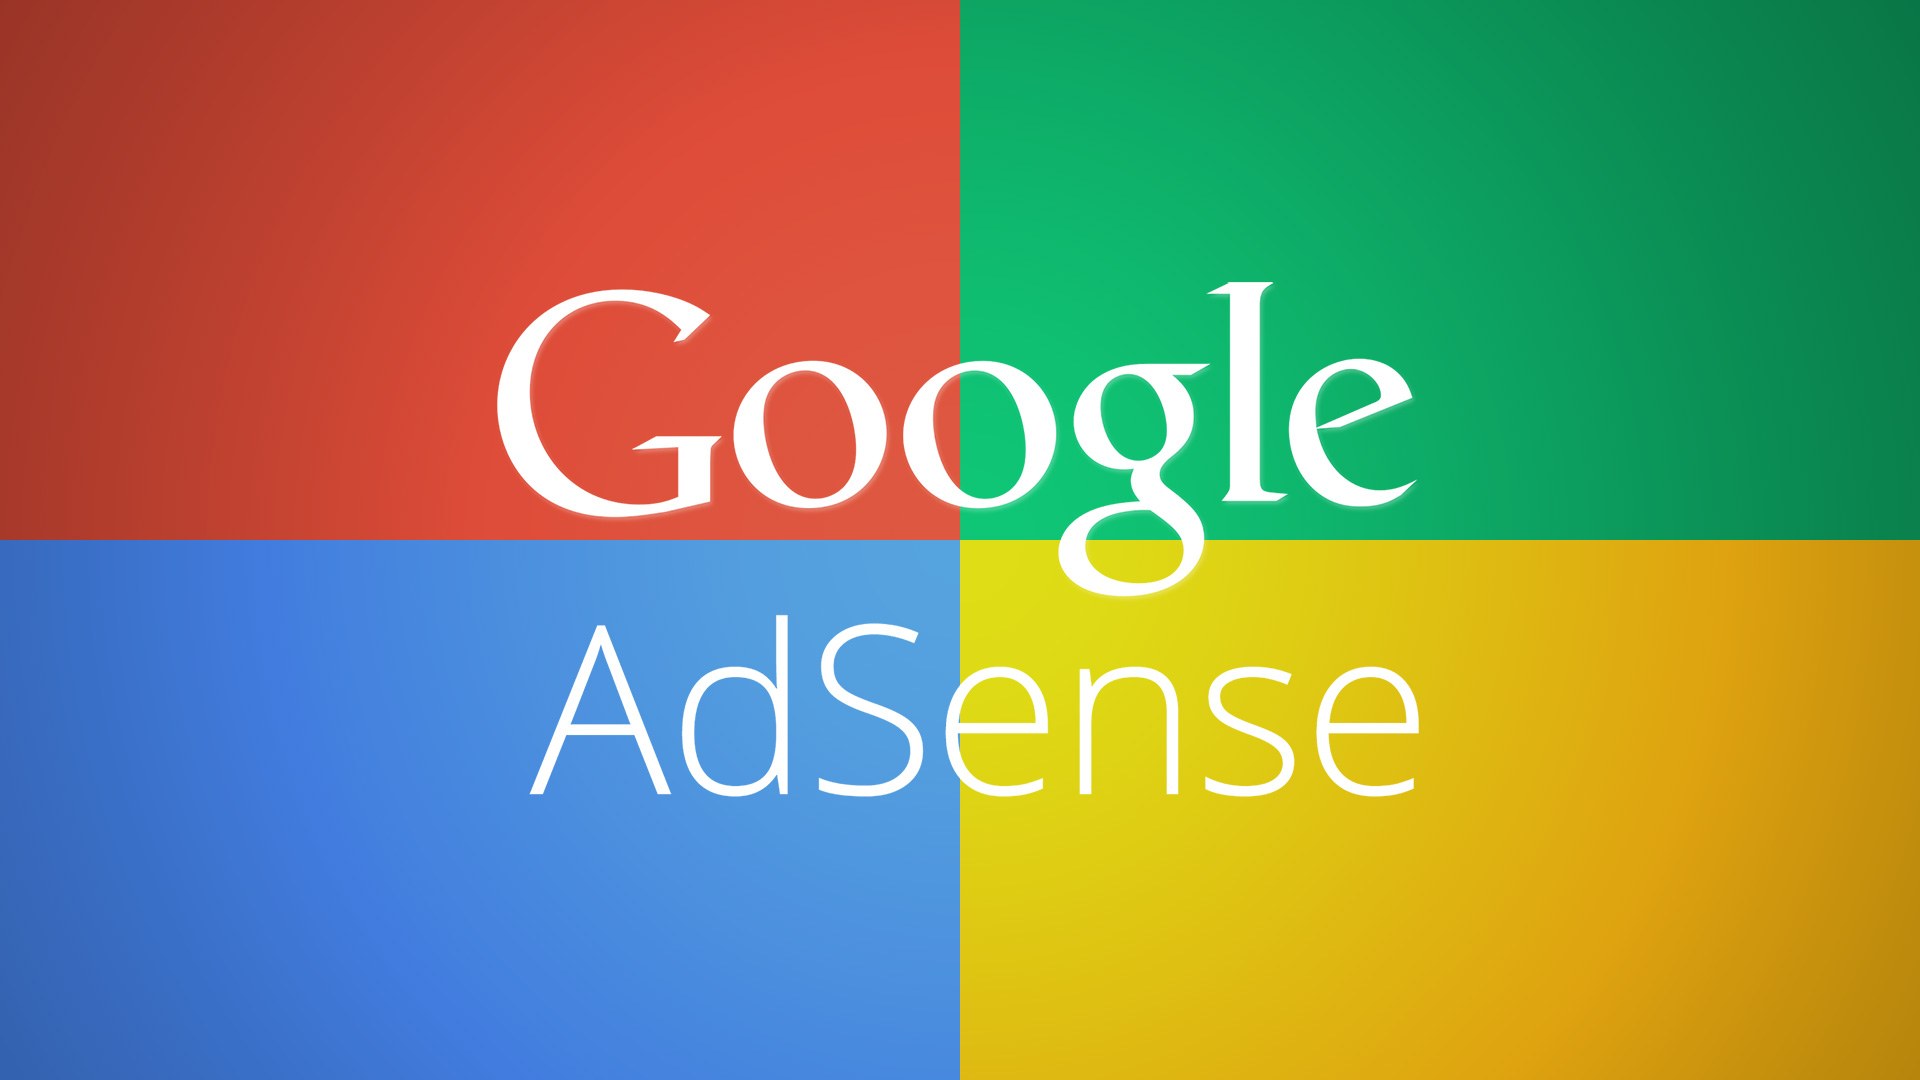 Google Adsense Easy Steps for Aprroval